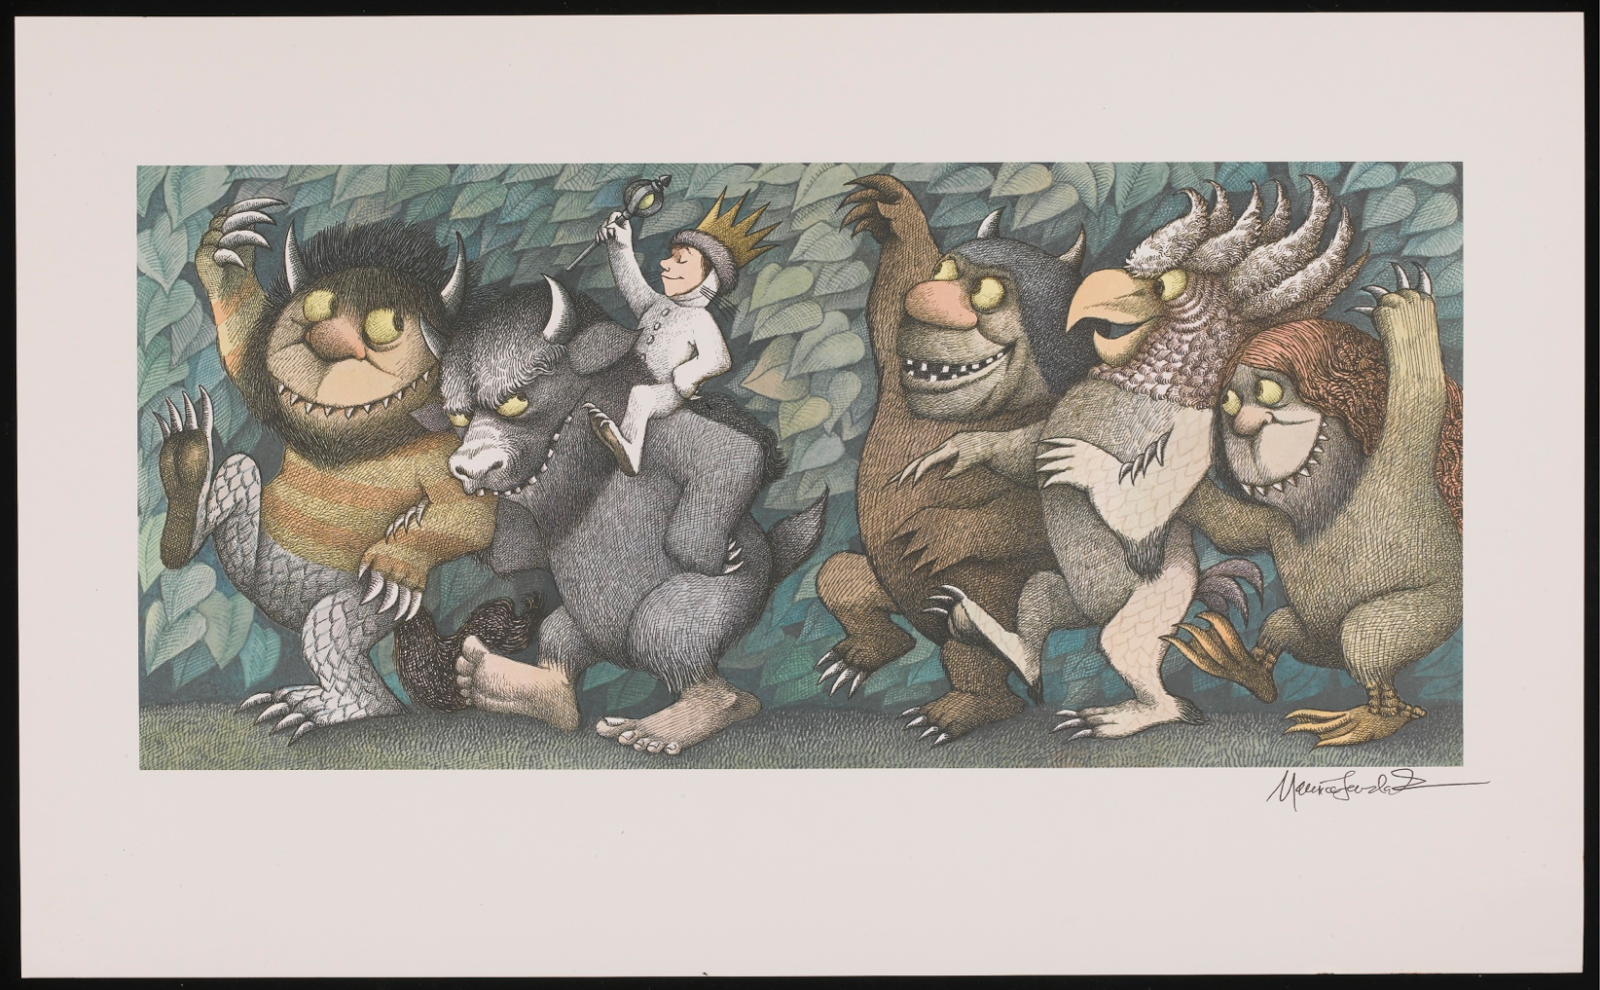 the life and works of maurice sendak The death in may of maurice sendak just a month shy of his 84th birthday was greeted throughout the publishing, art and reading world with deep sadness.